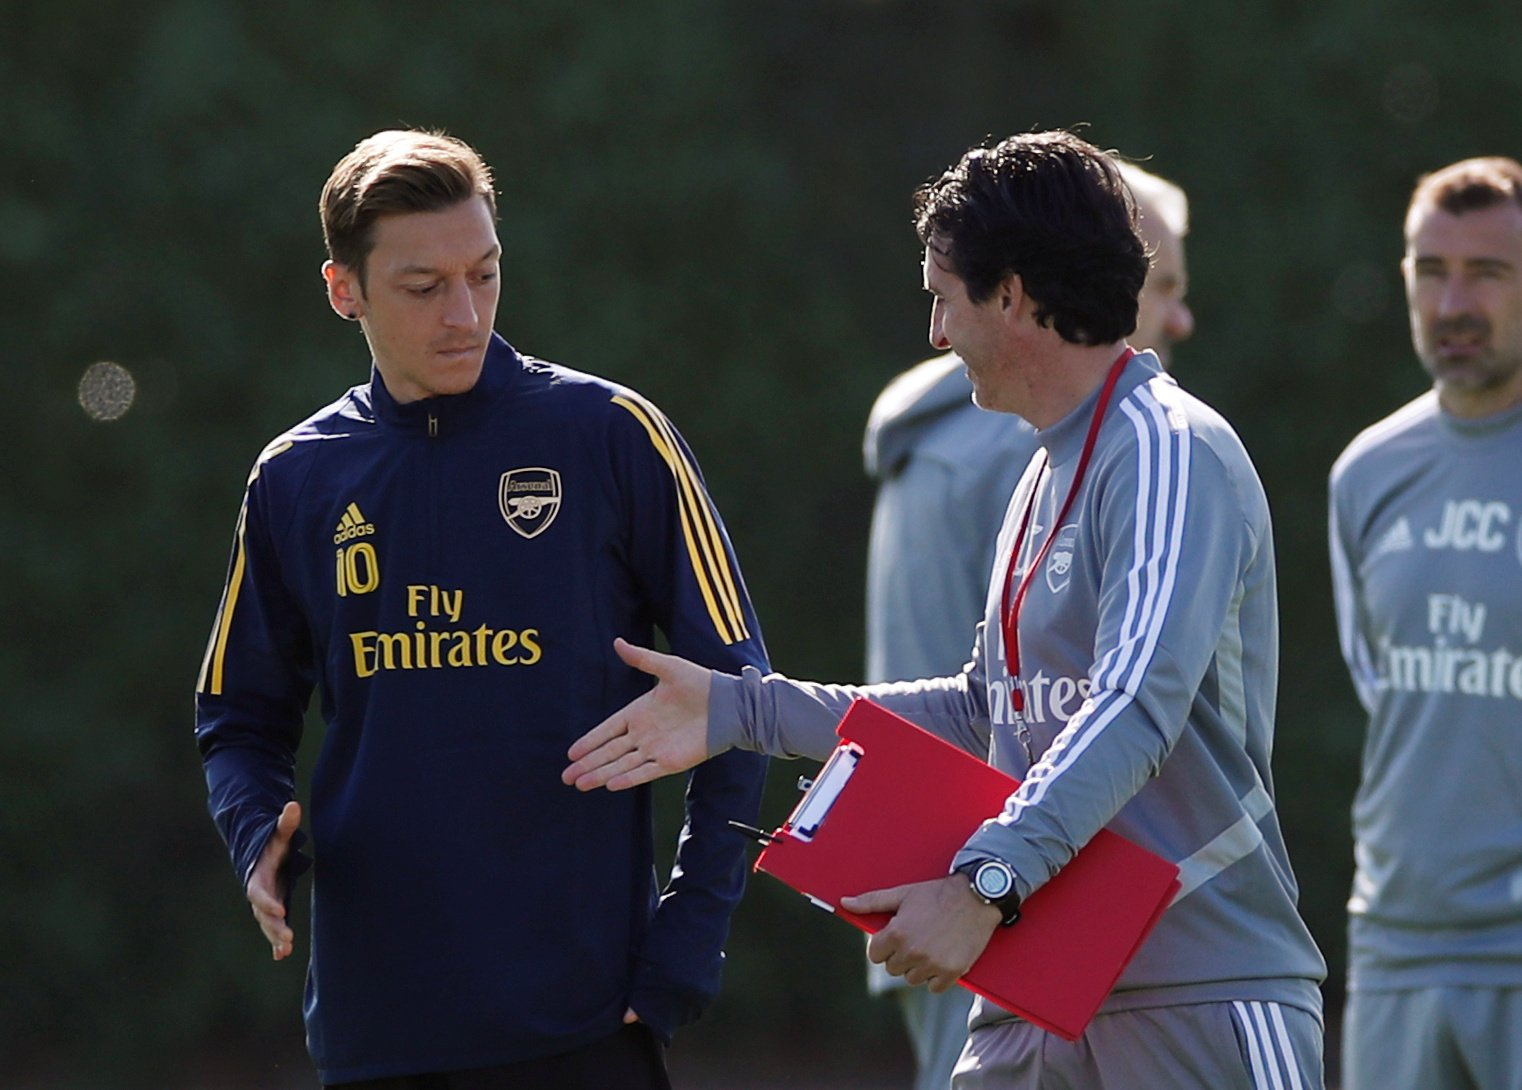 Arsenal: Fans call for Mesut Ozil to feature in more games